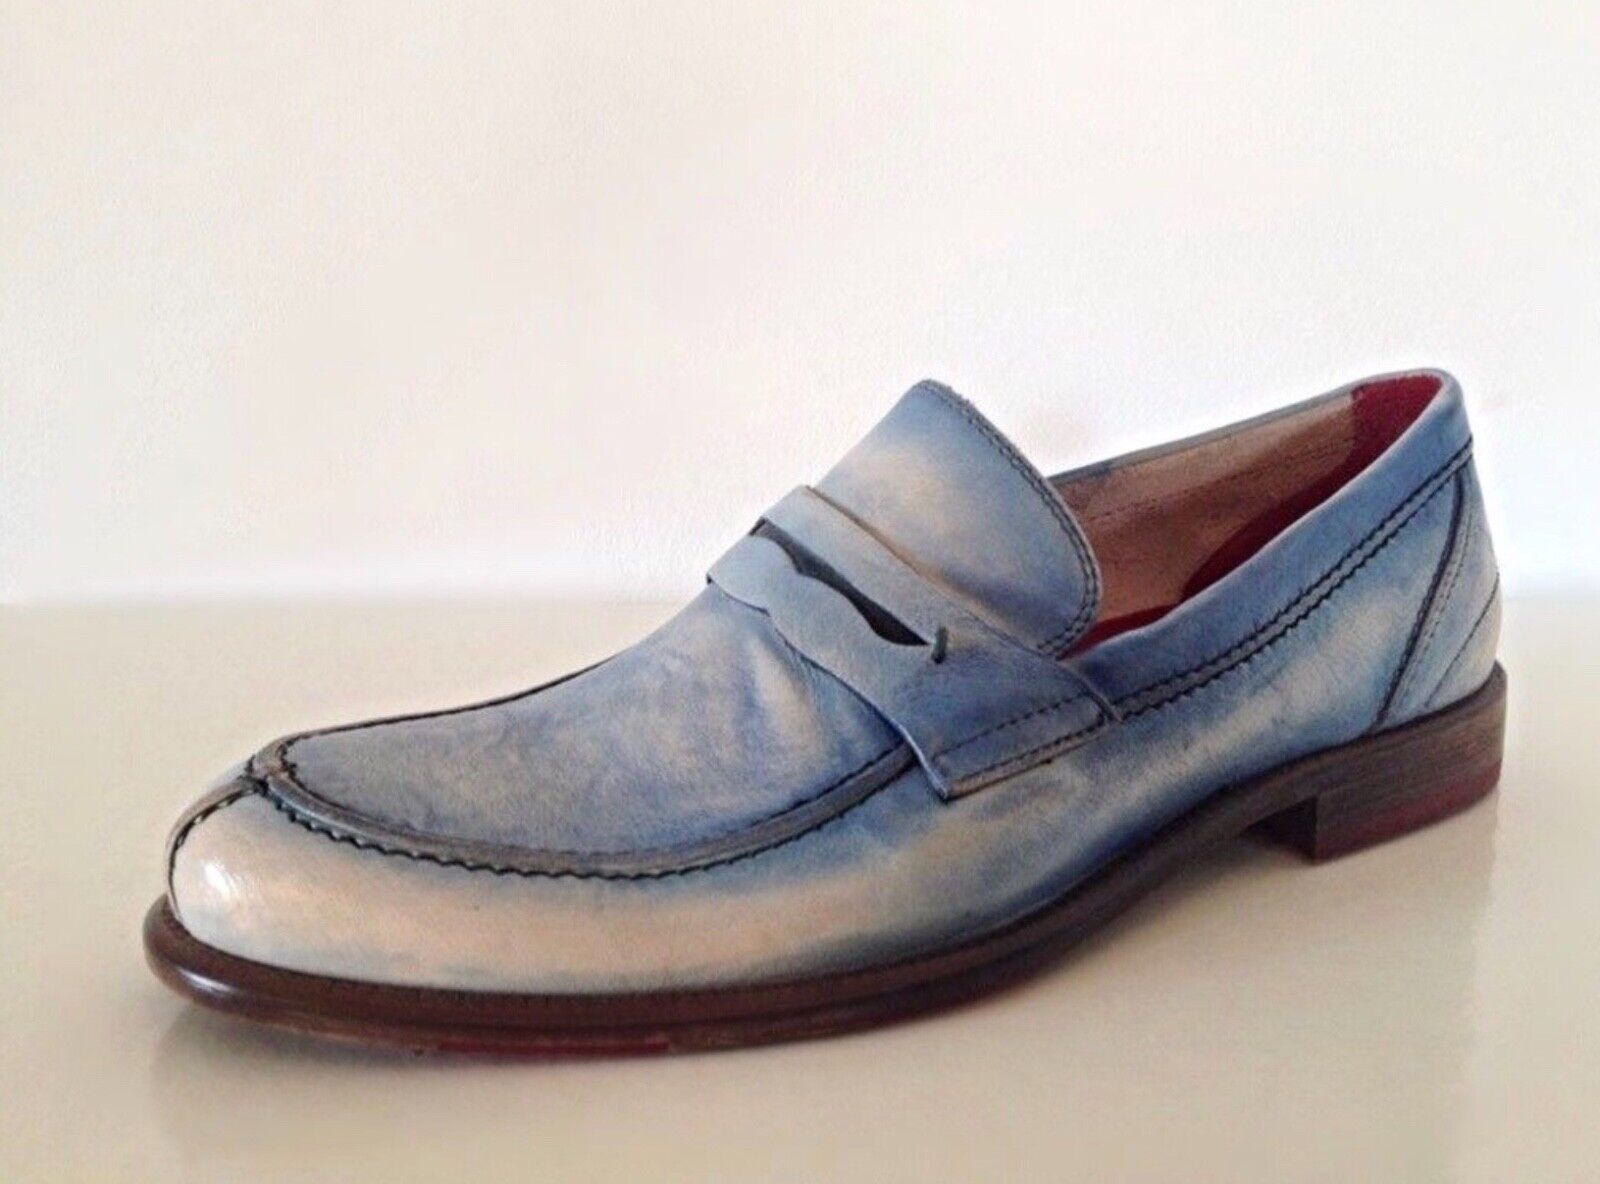 shoes Mens Made in  Leather Handmade shoes Moccasins Loafers EUR 44   45